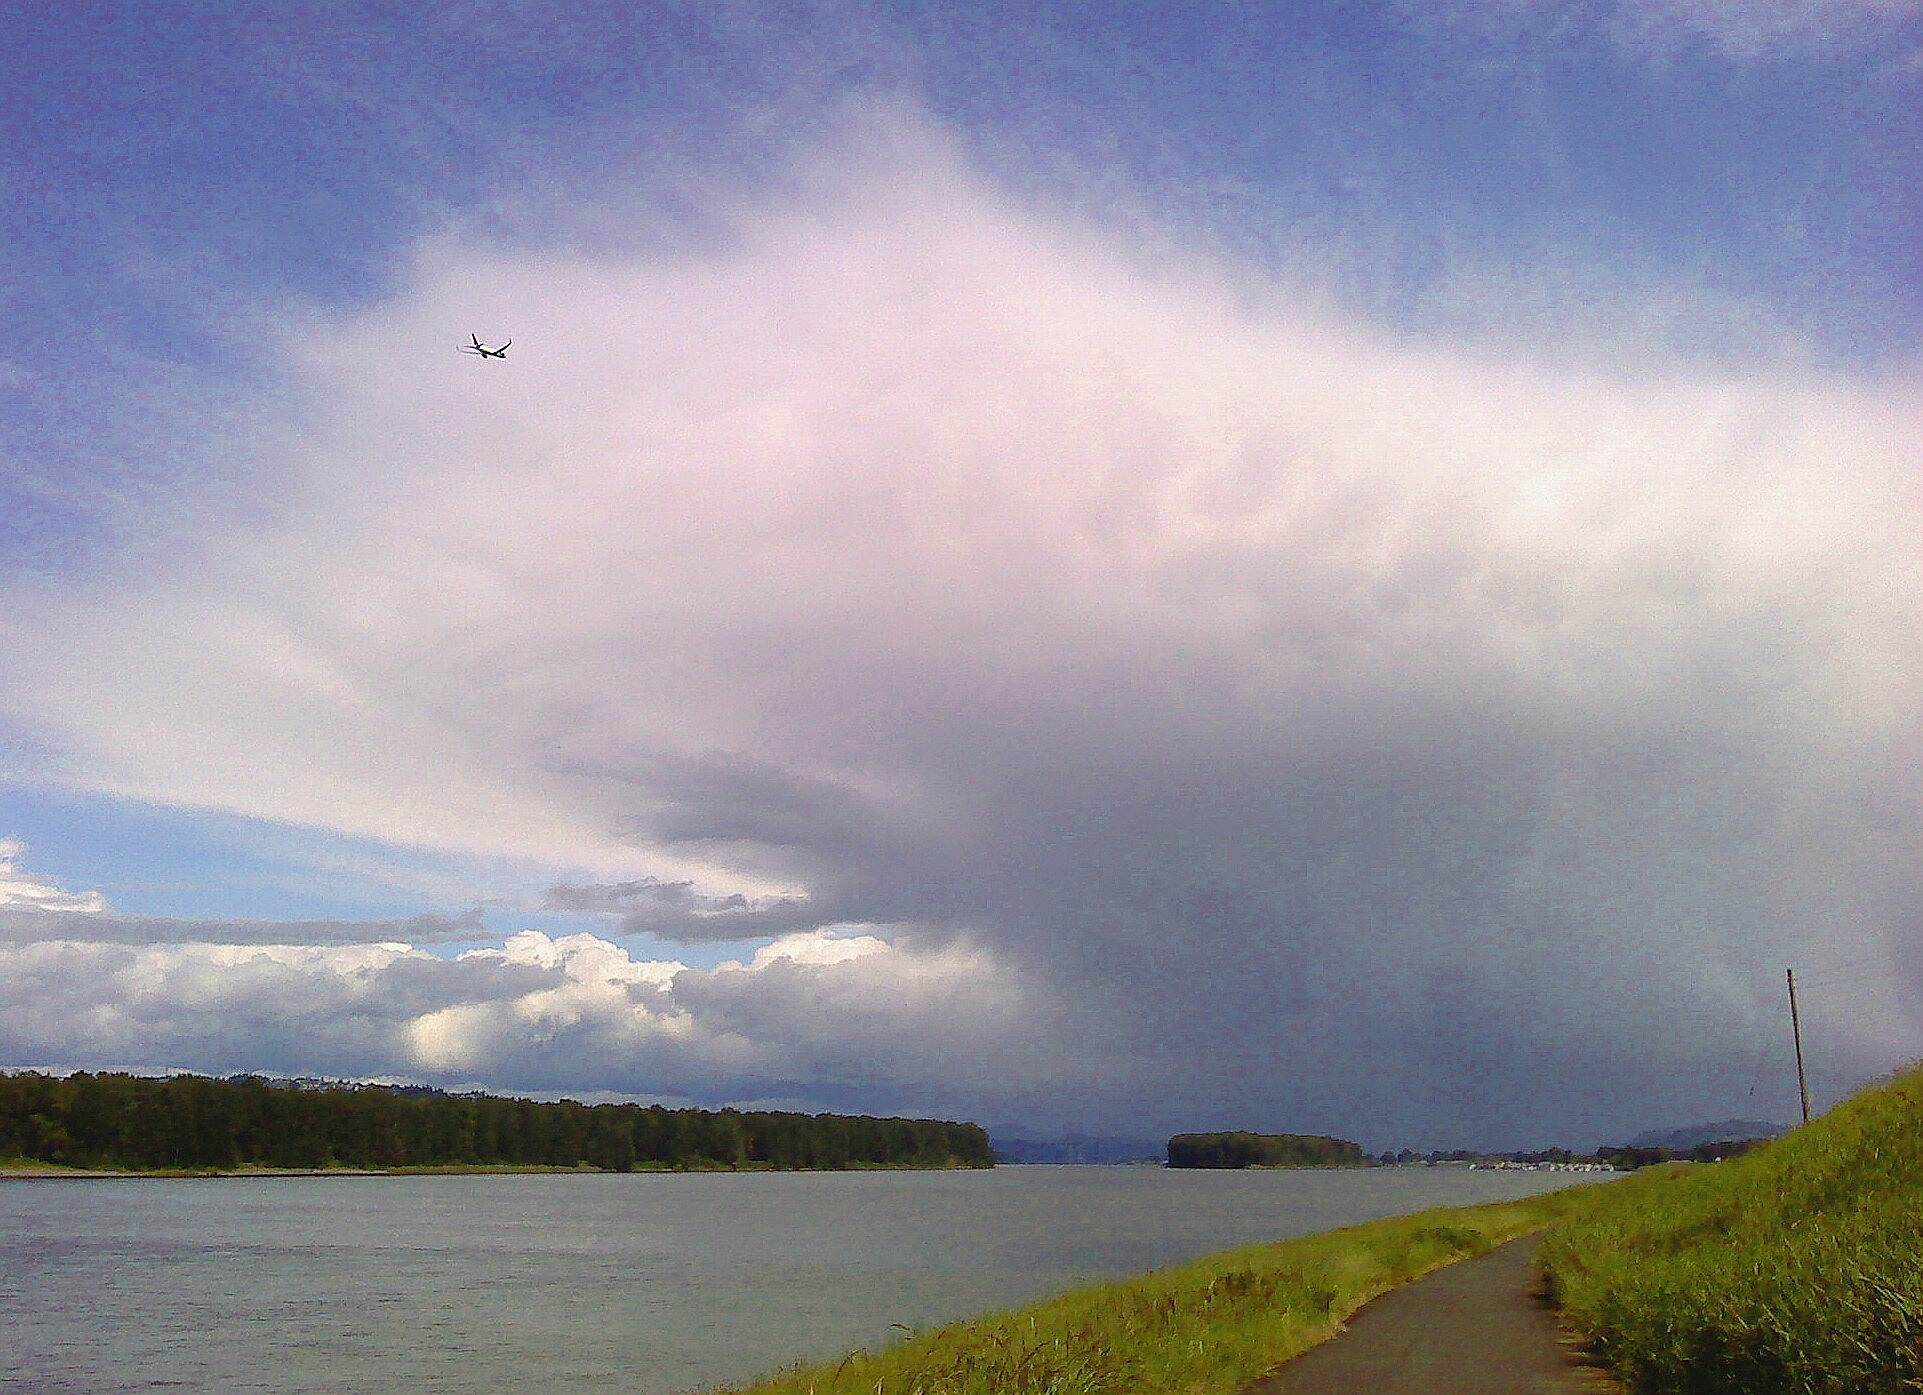 Marine Drive Trail along the Marine Drive trail nice clouds and airplane above, Columbia River and Marine Drive bike path below. Just east of the Portland Airport.